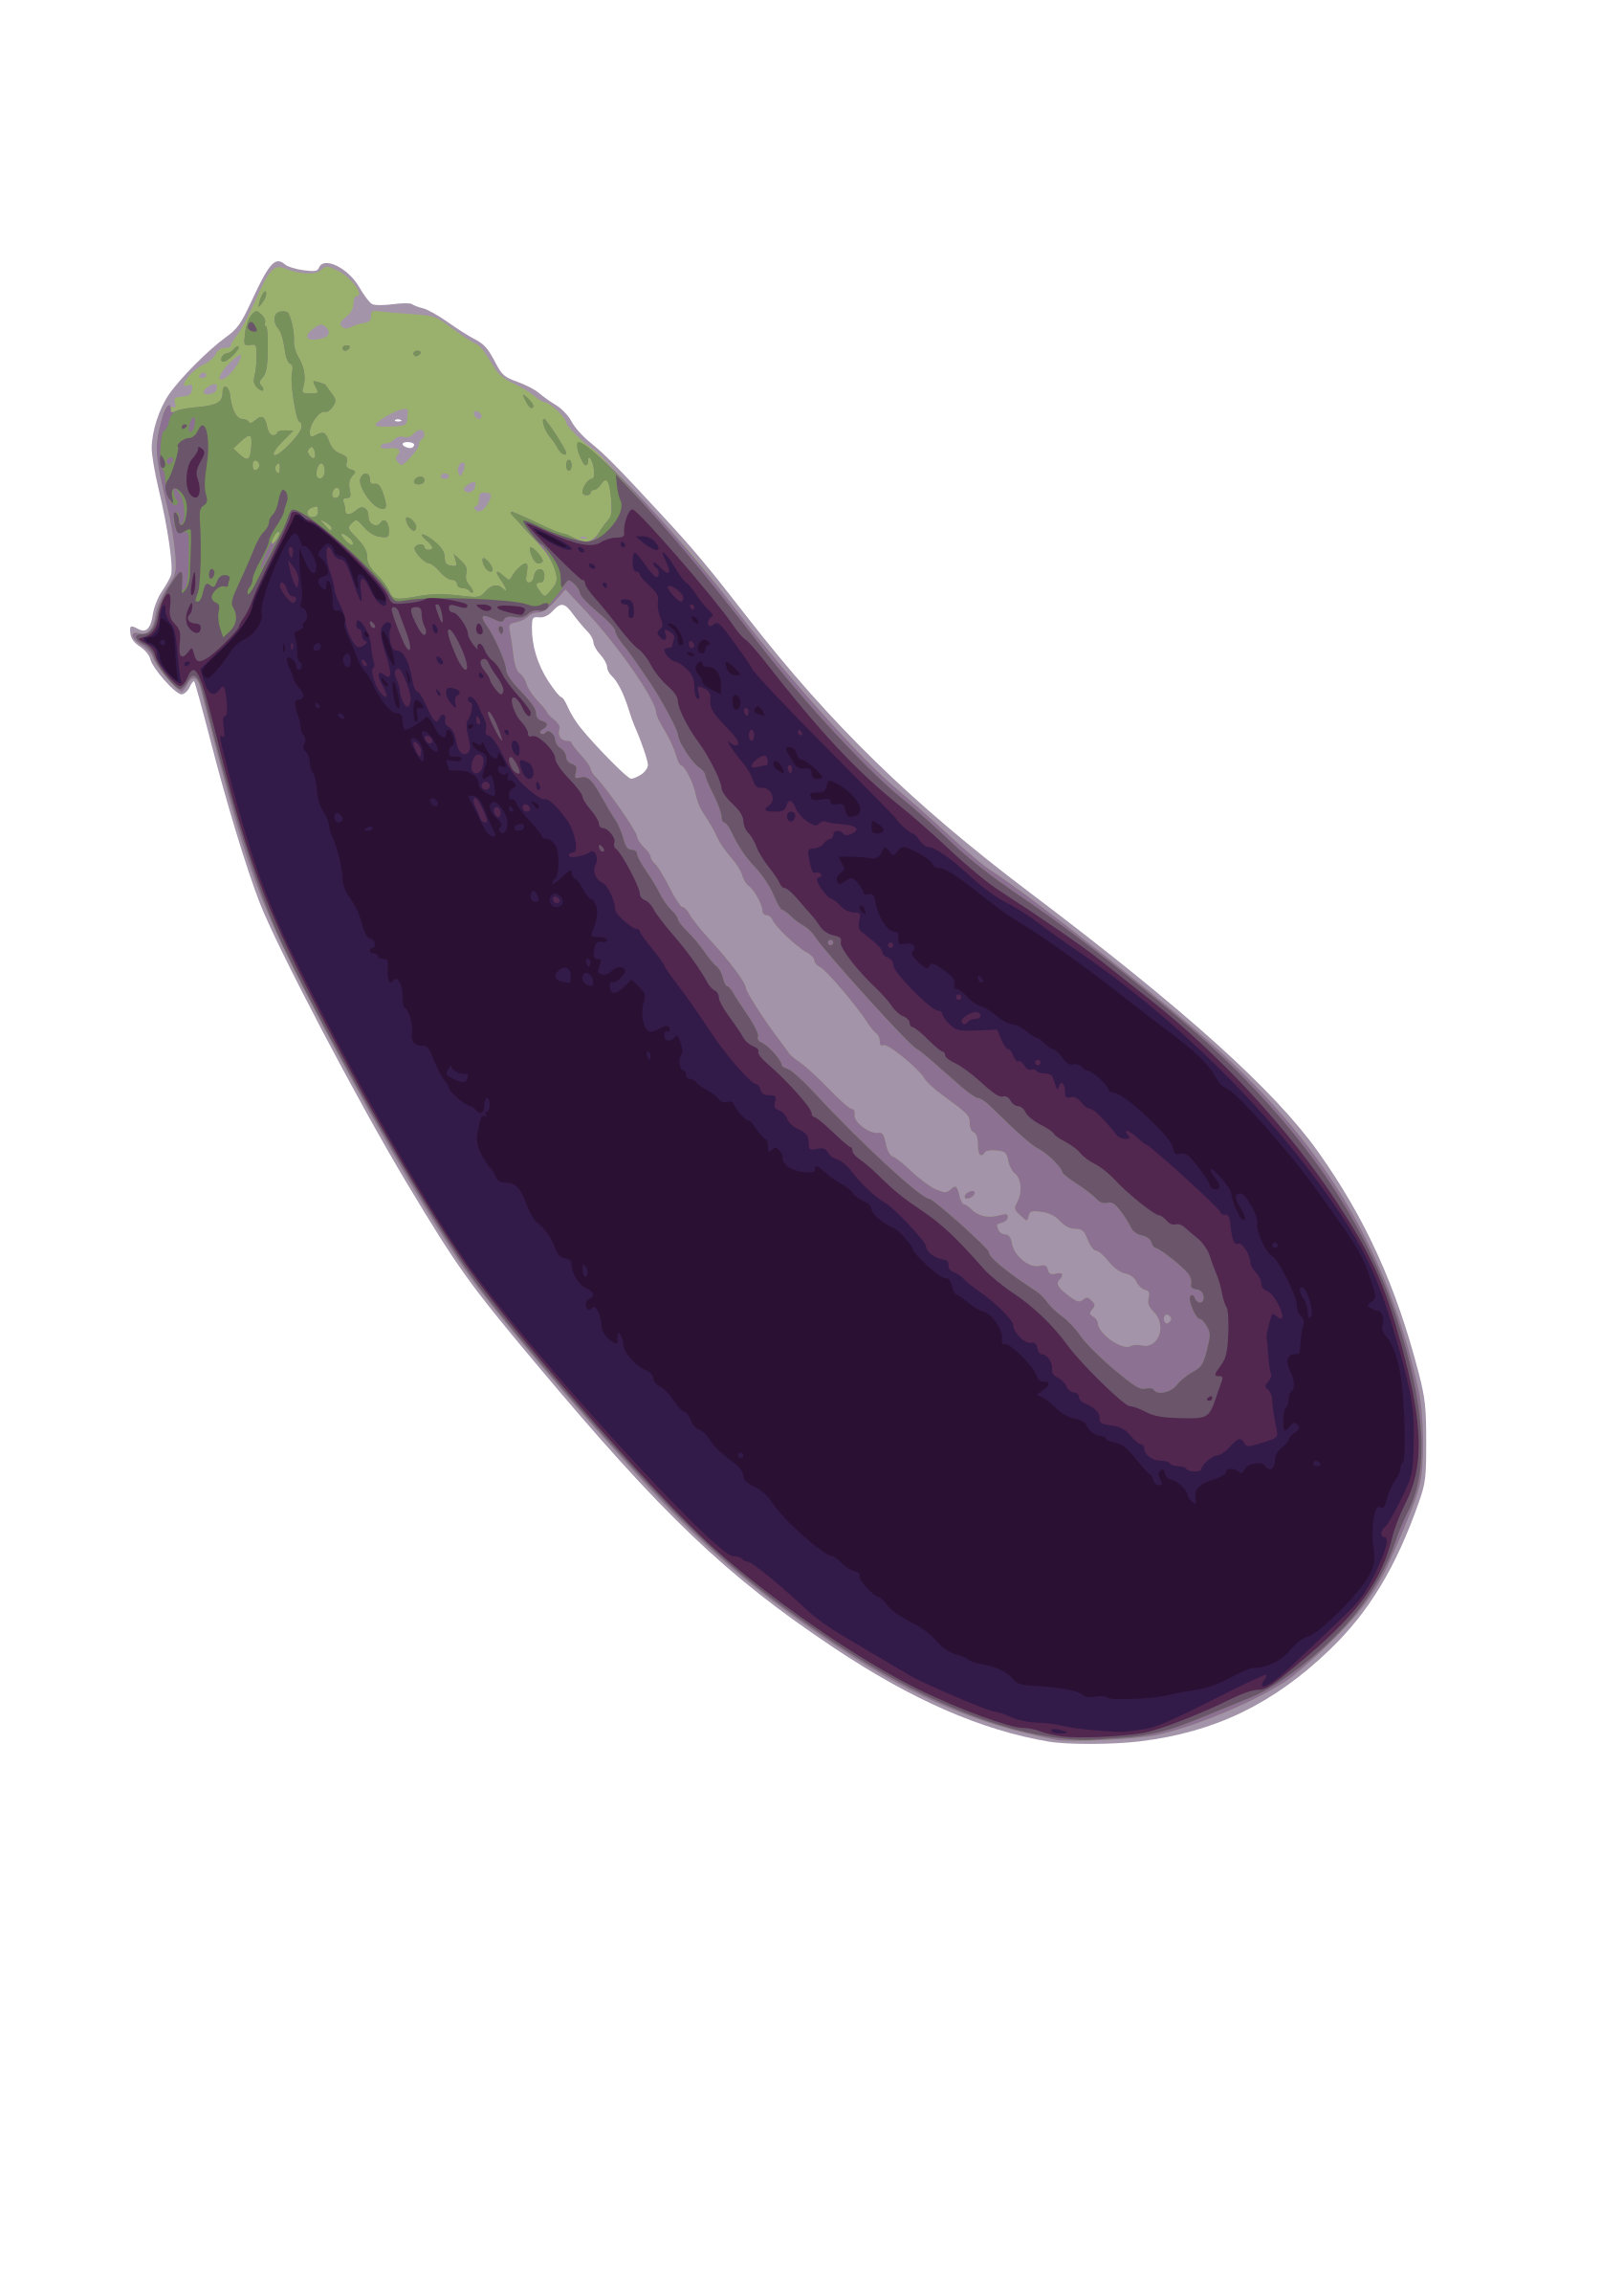 Eggplant png small. Clipart